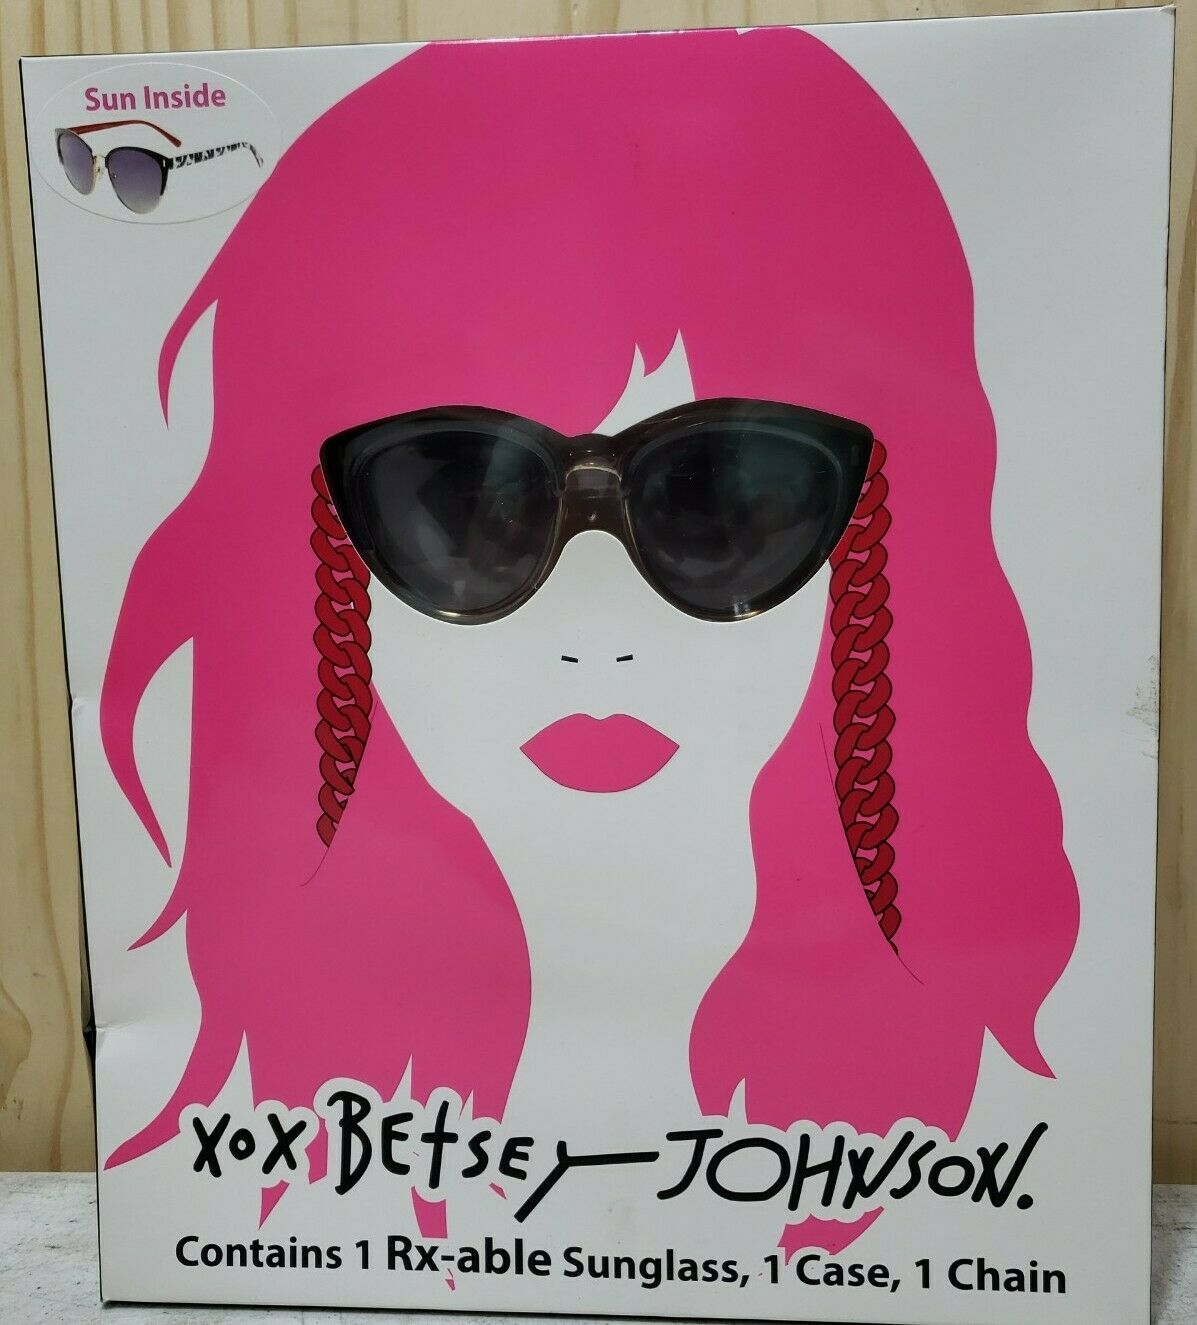 NEW XOX Betsey Johnson Sunglasses and Red Lip w/Carry Case